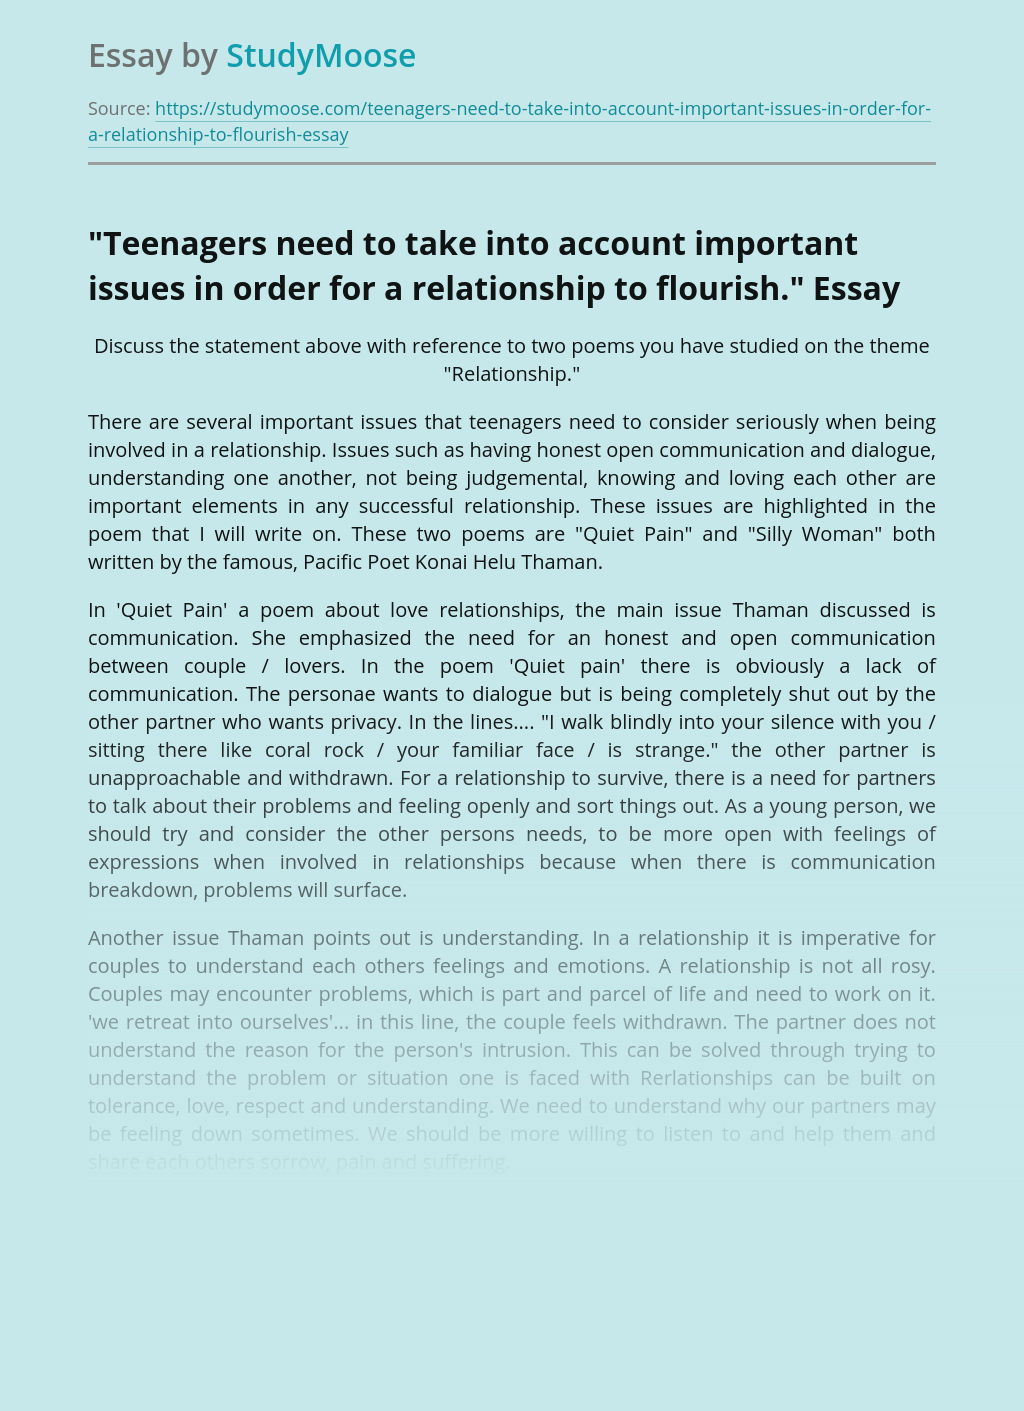 """""""Teenagers need to take into account important issues in order for a relationship to flourish."""""""